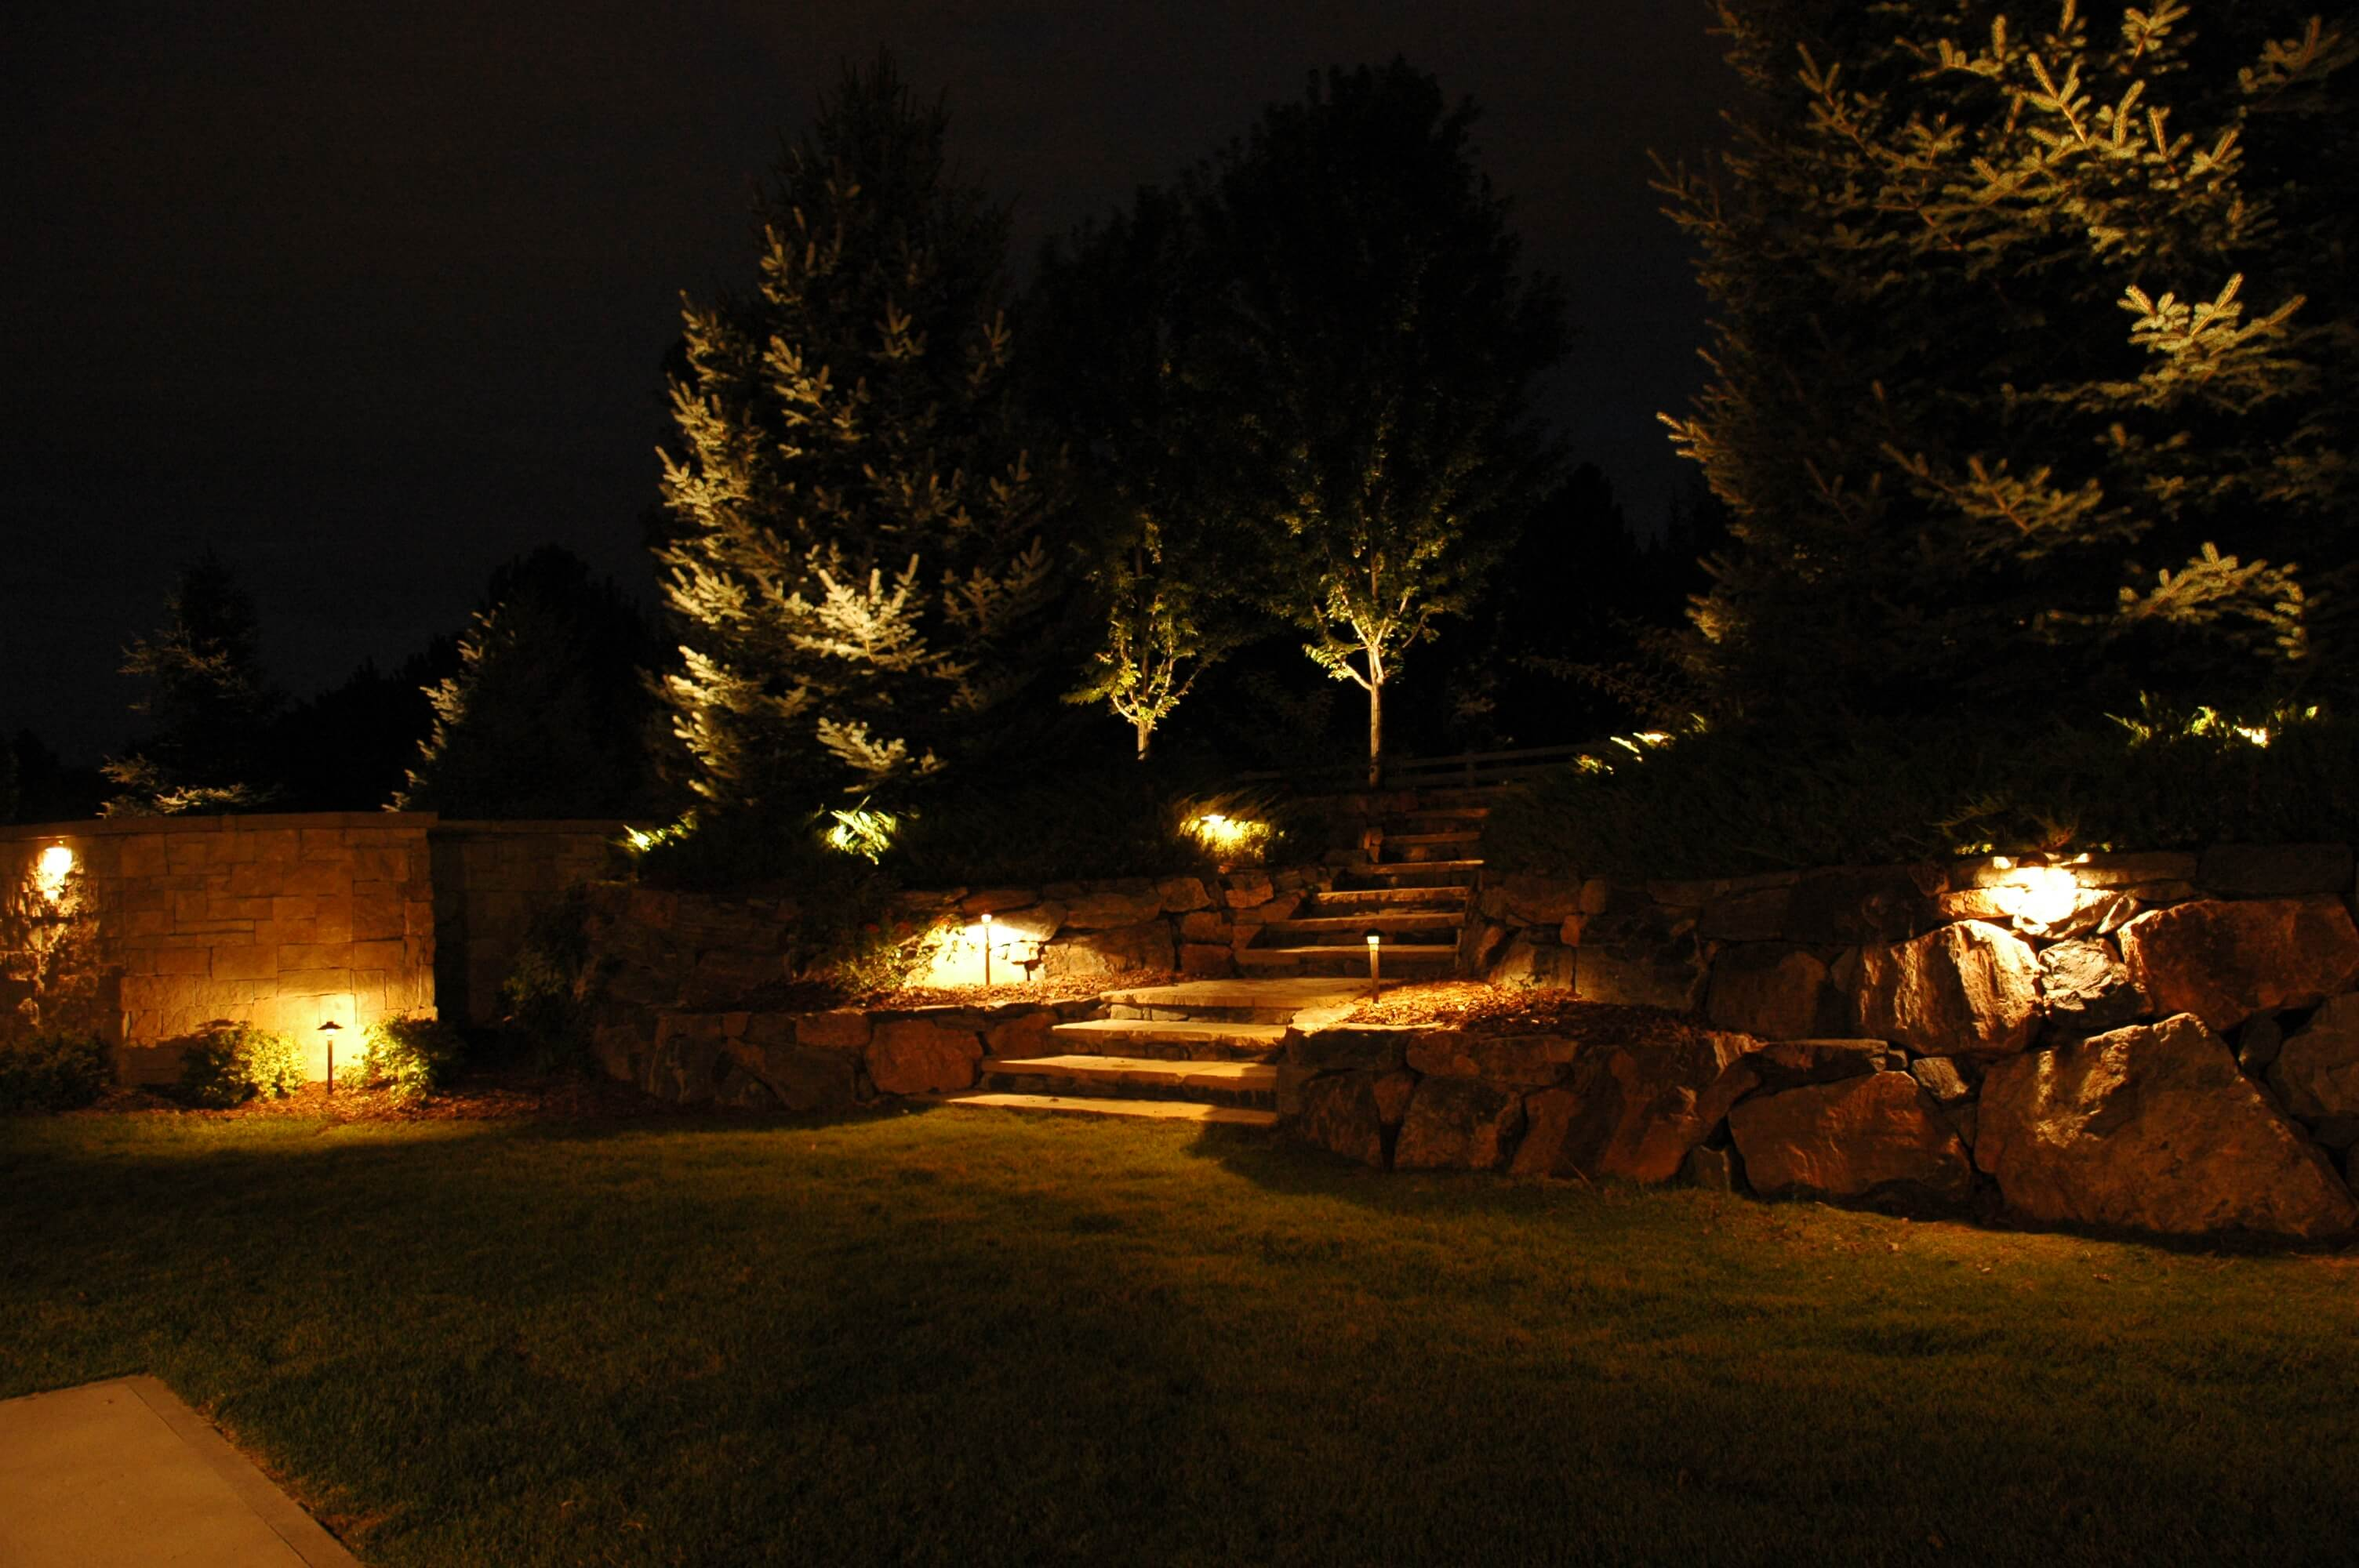 Lighted rock walls and trees